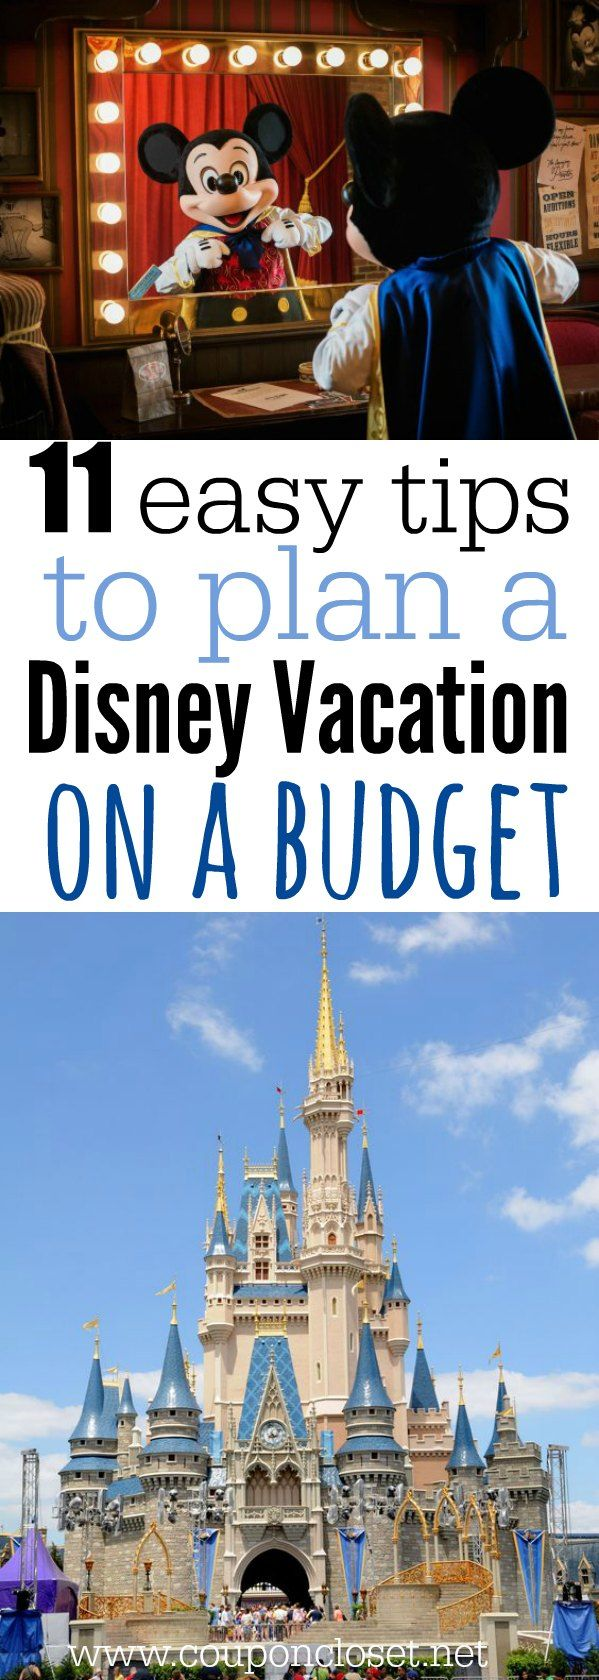 Heading to Disney? Plan a Disney Vacation on a Budget with these easy tips. These tips on planning a Disney vacation will help you save money and time!